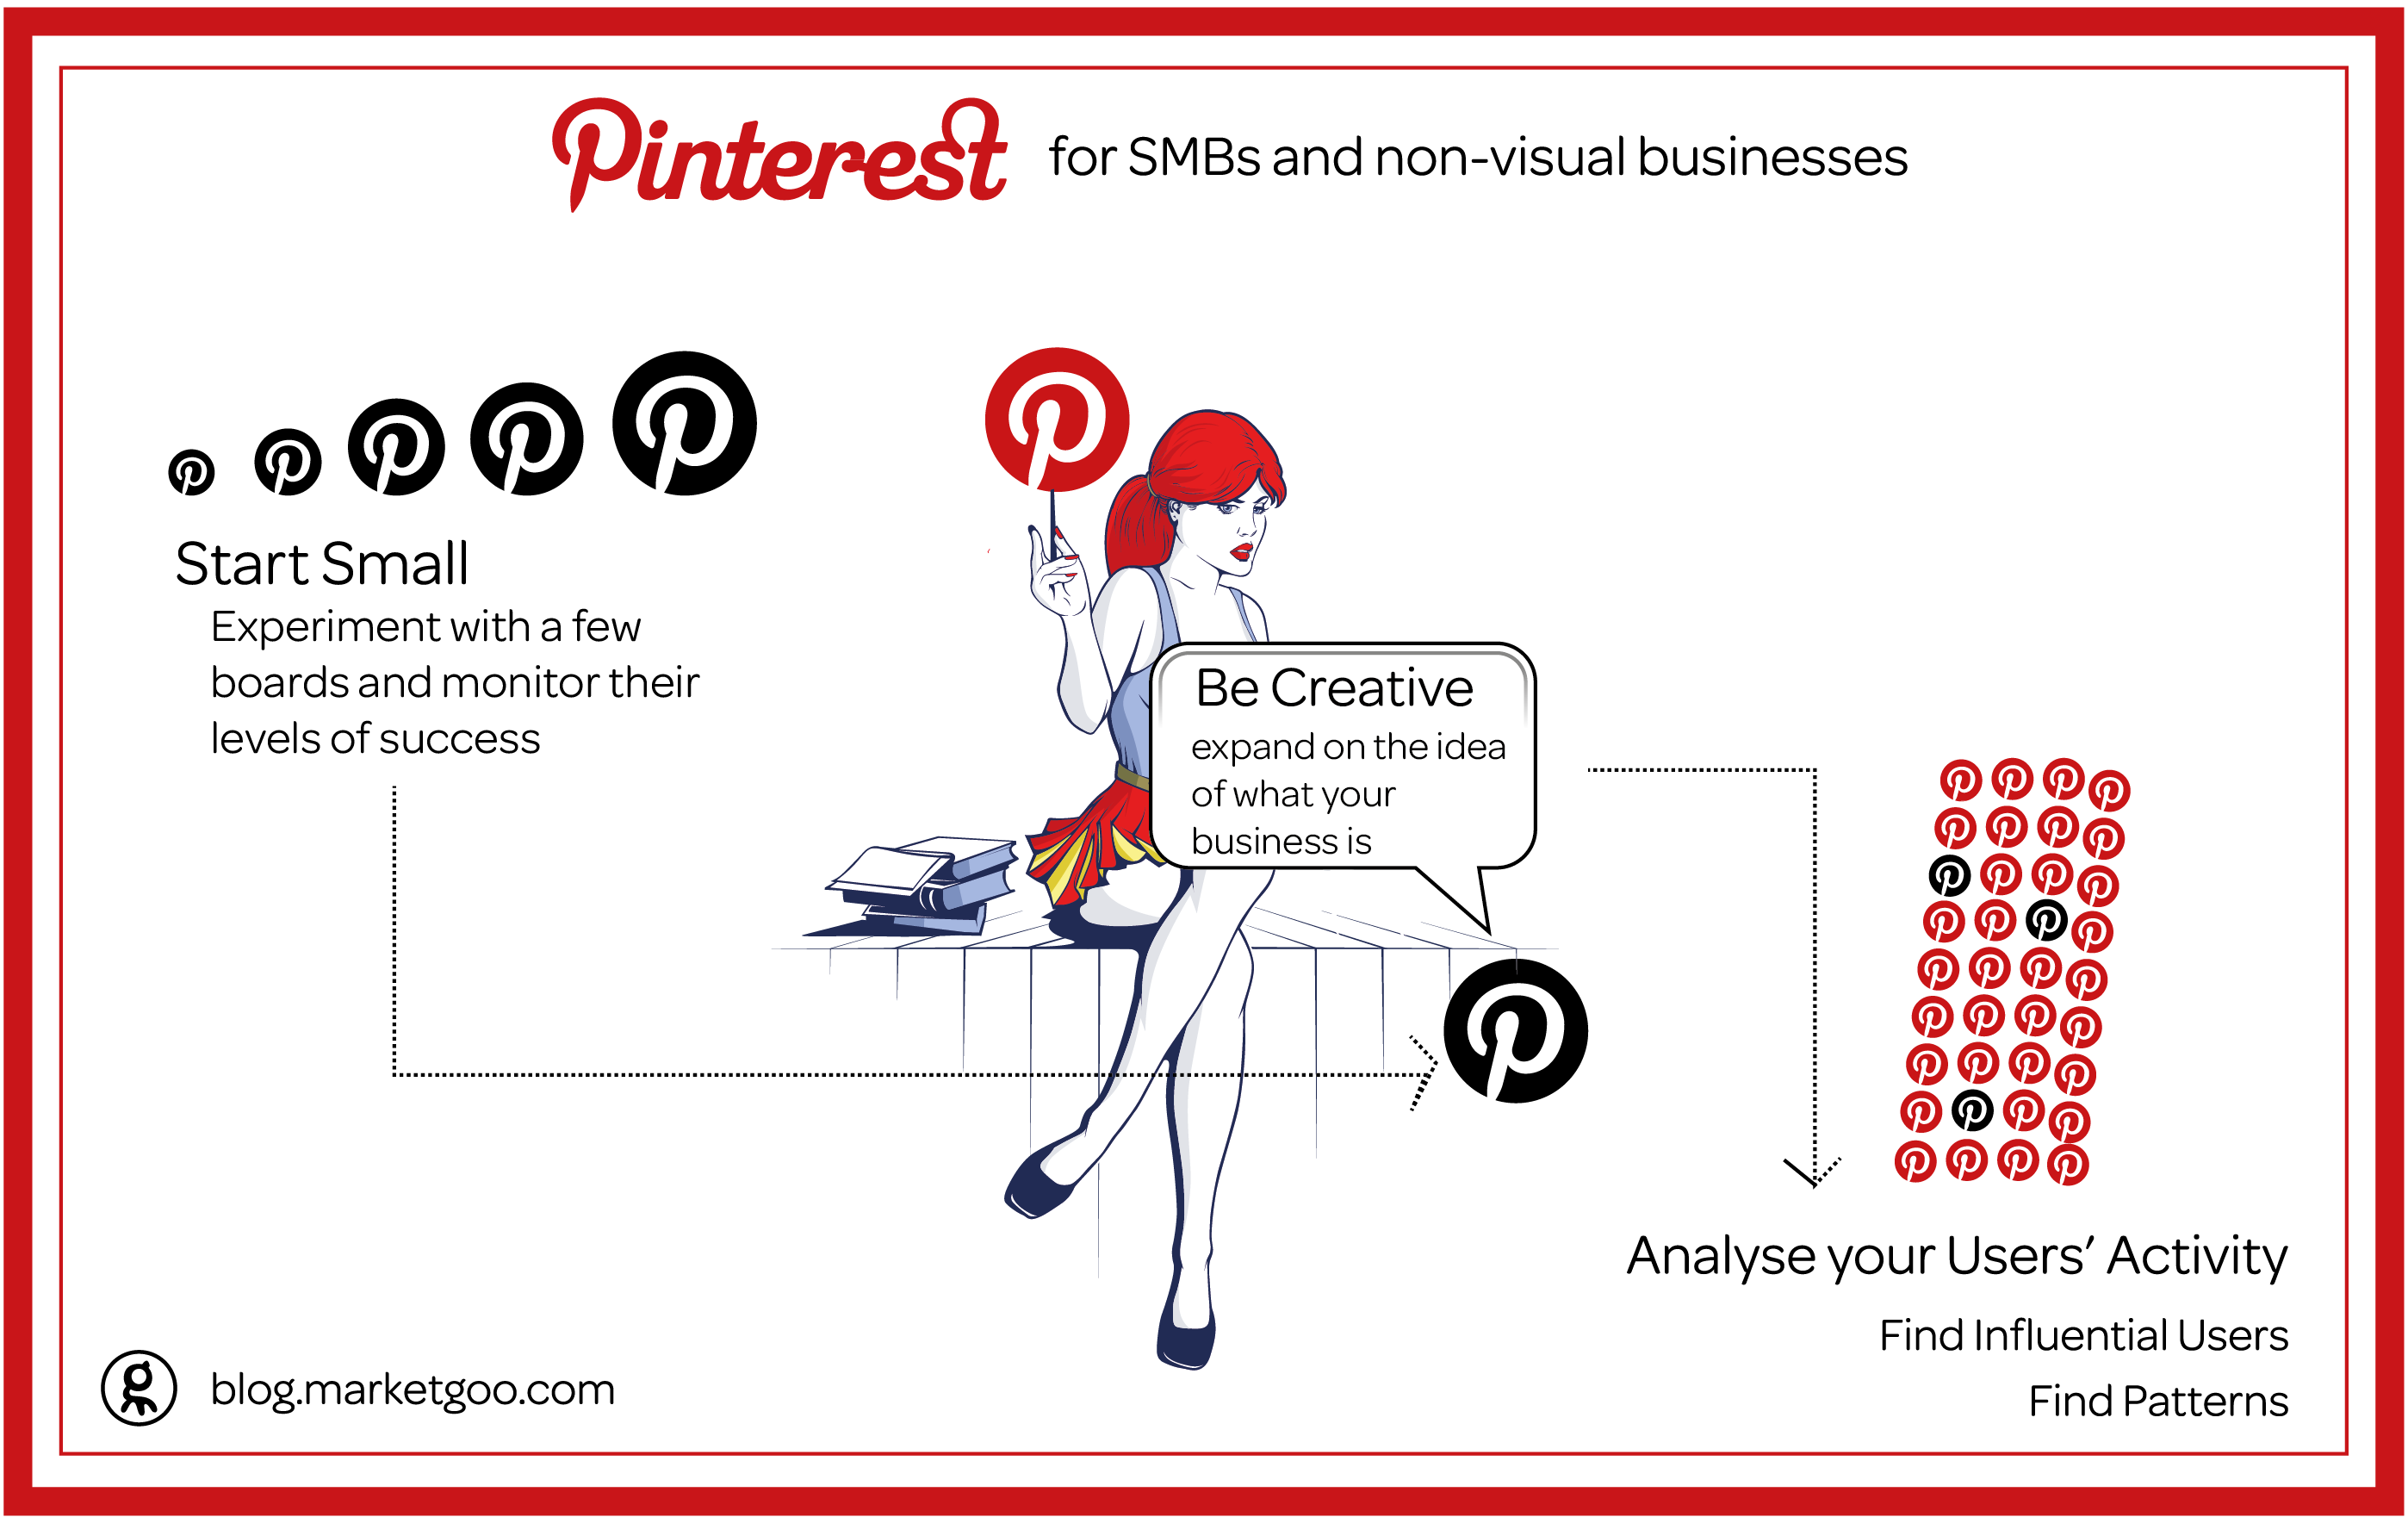 Pinterest for SMBs